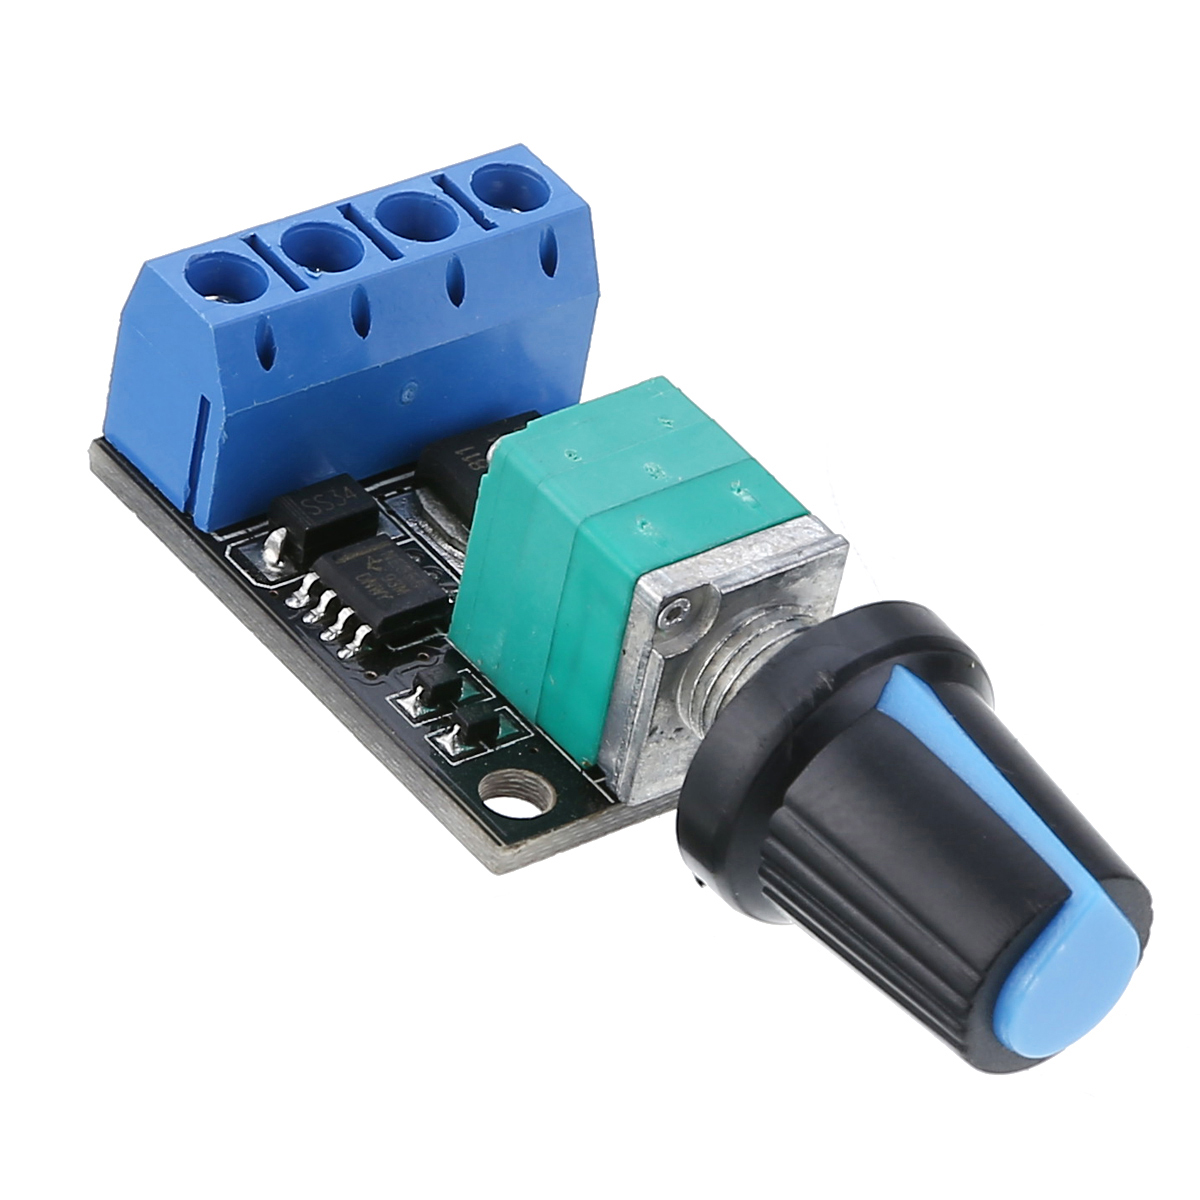 10A 5V-16V DC Motor Speed Controlling Switch LED Dimmer Controller DC Motor Speed Controlling Switch